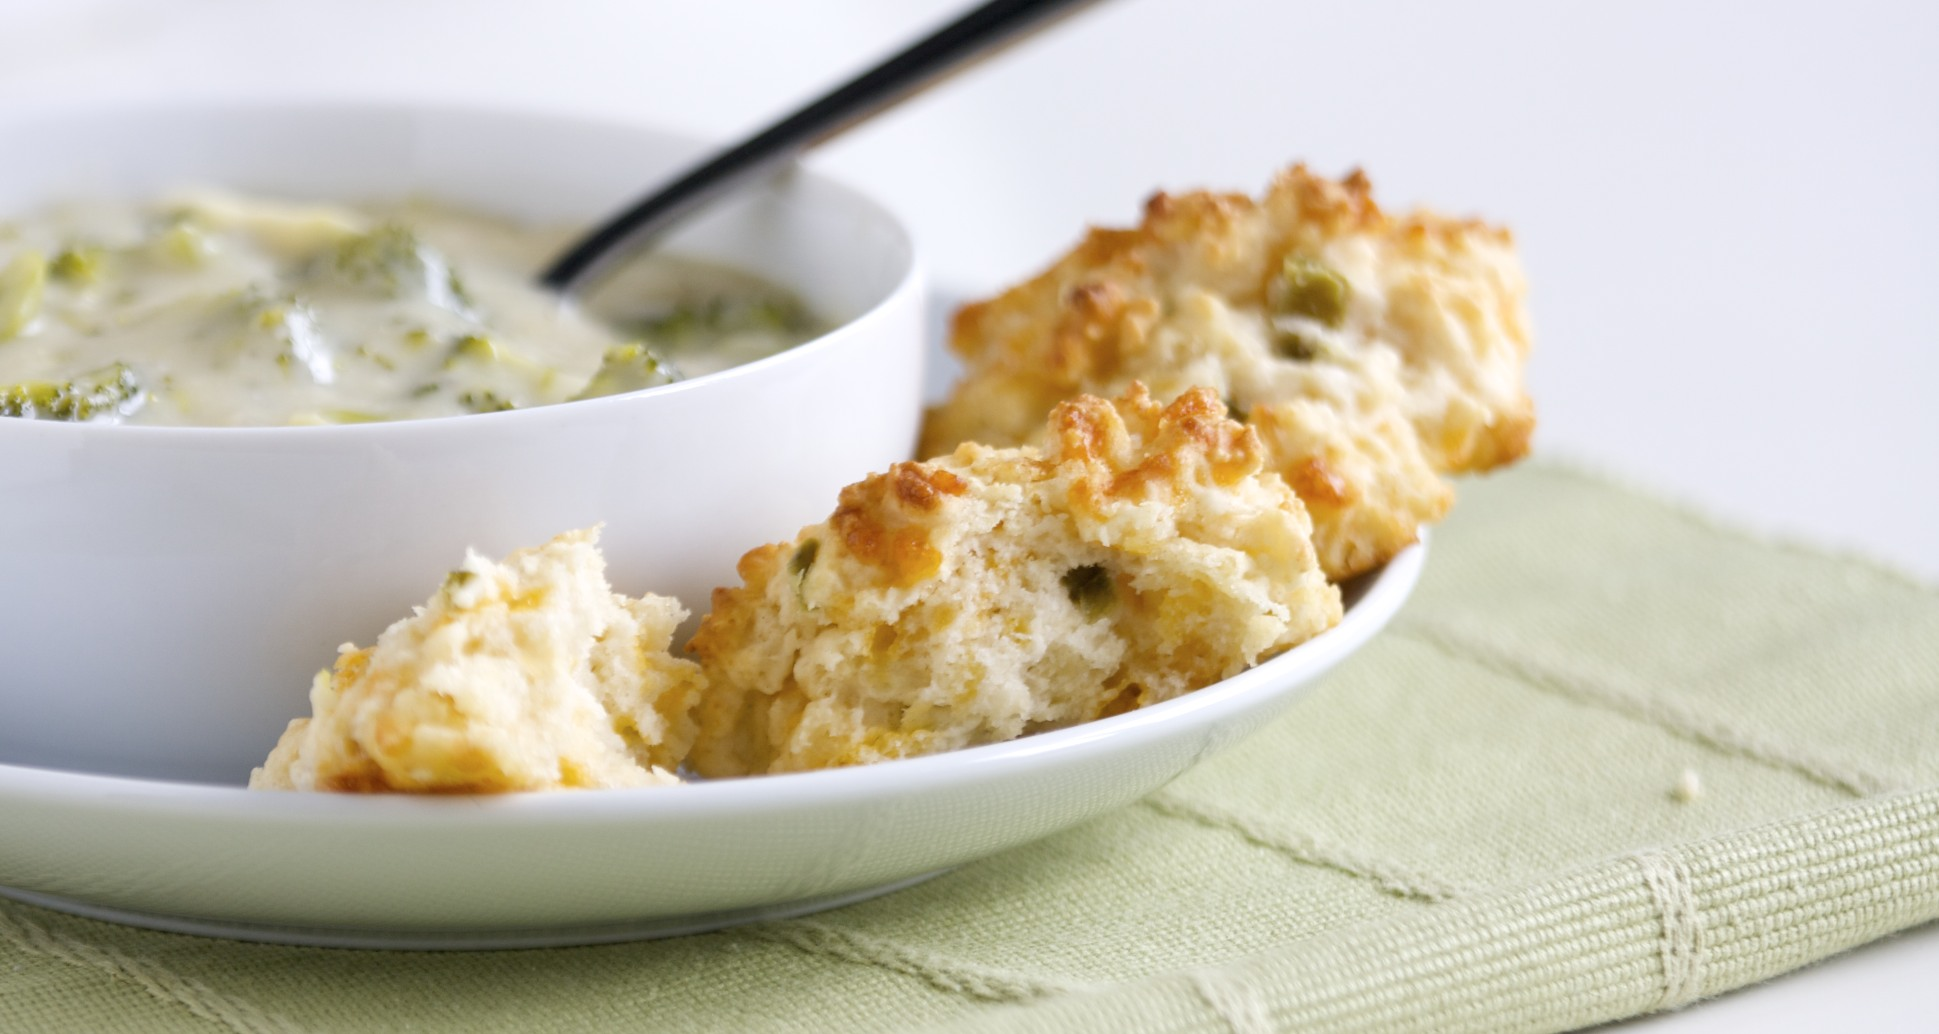 Jalepeno Cheddar Biscuits made with bisquick